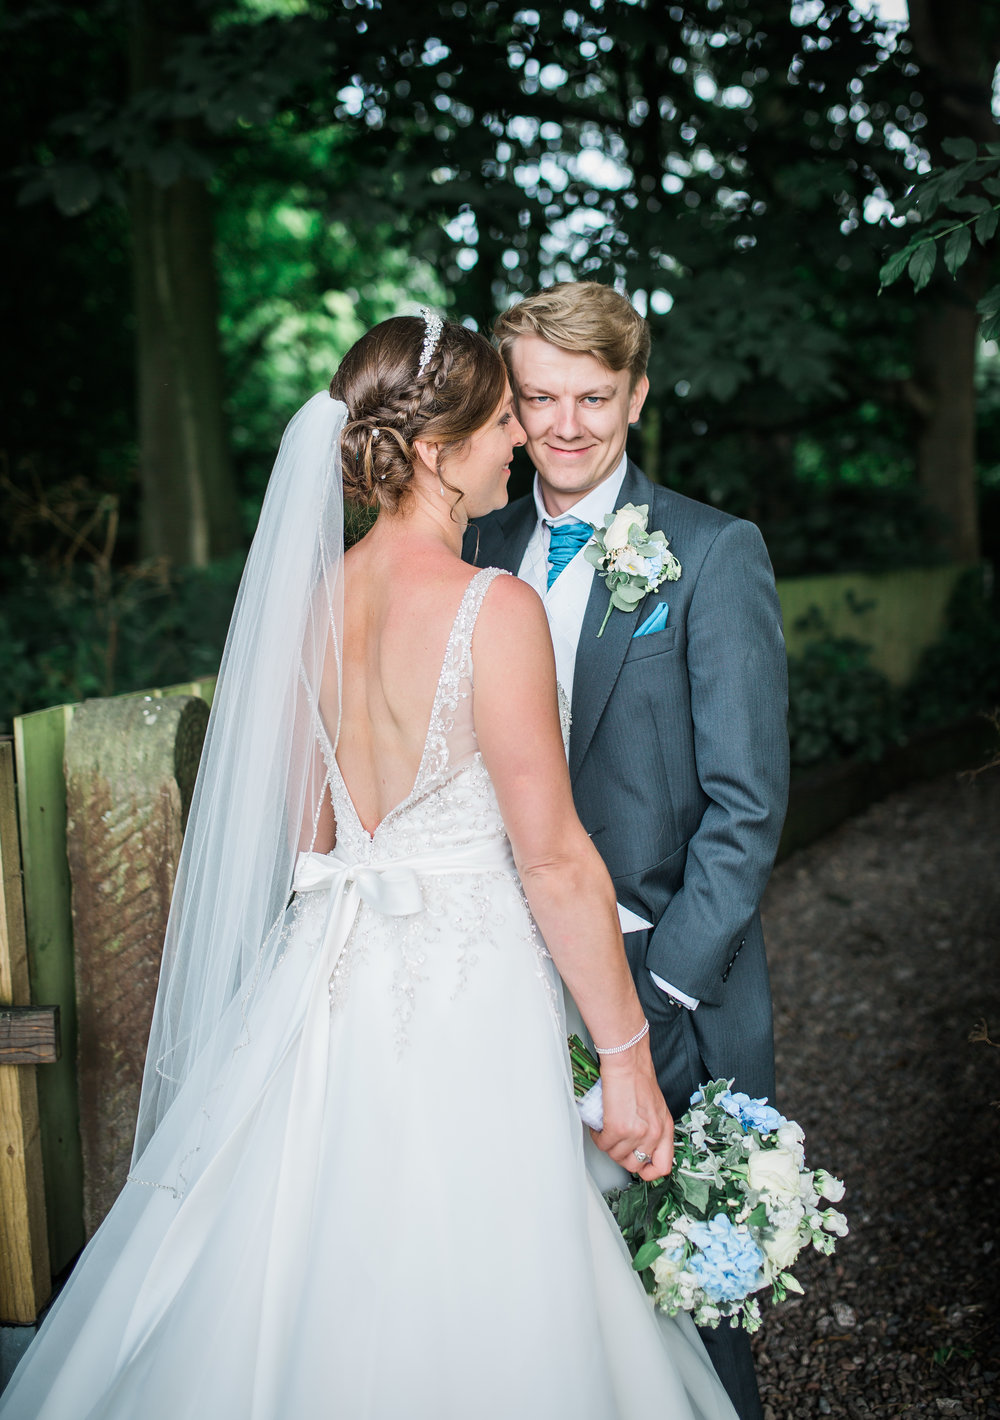 Portrait of the bride and groom amongst the trees- natural wedding photography